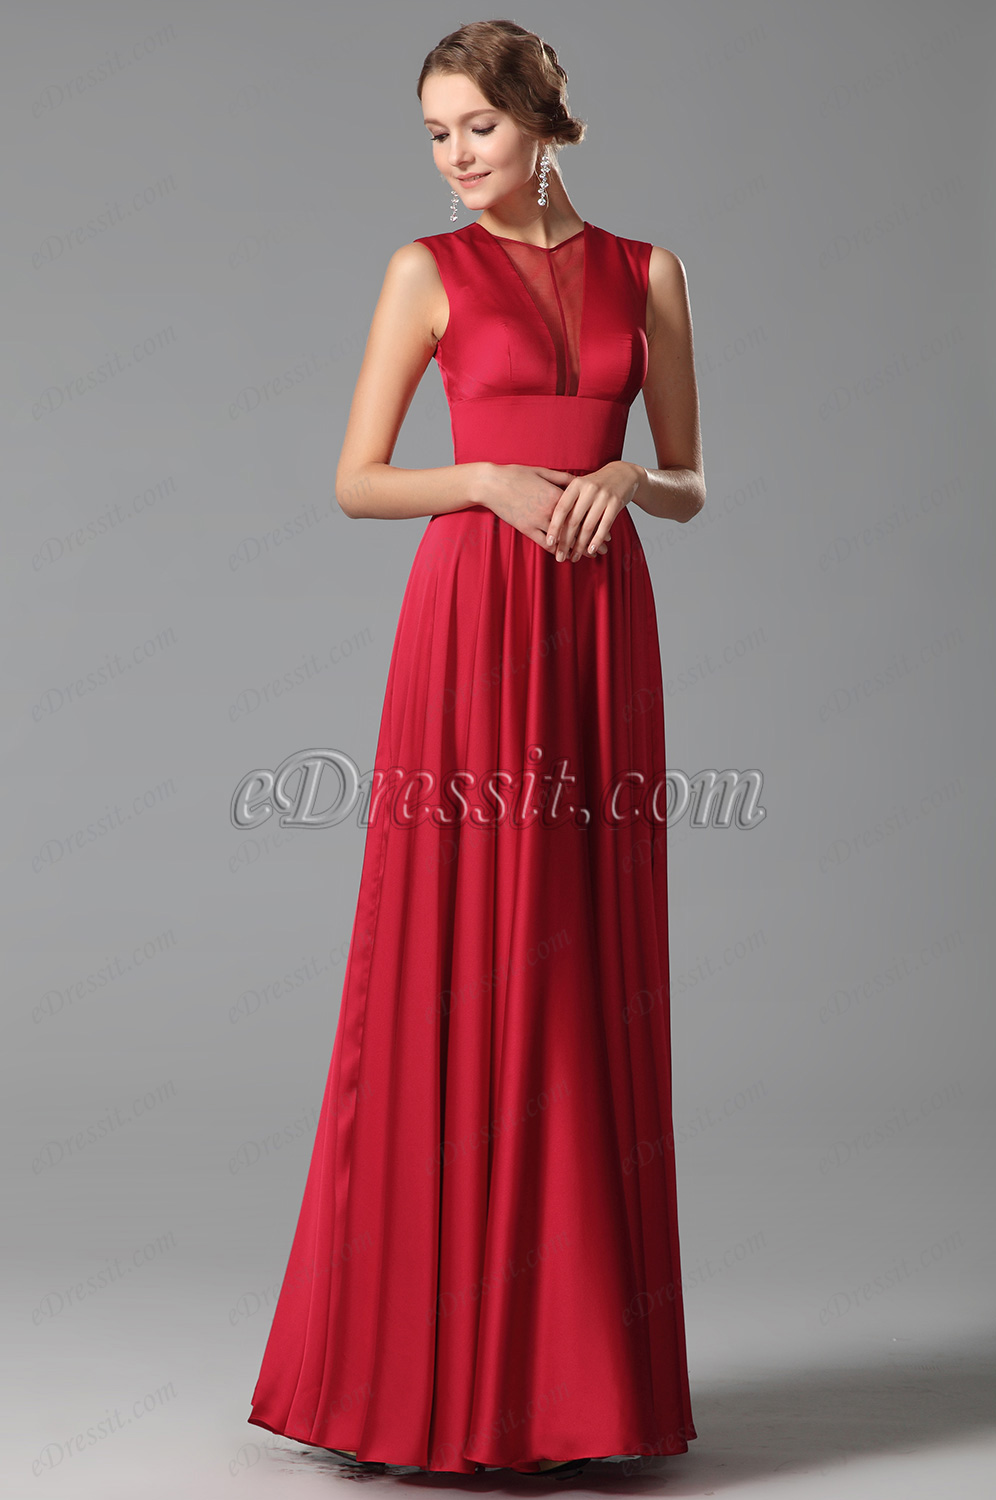 Stunning Red Evening Gowns Refresh Your Look - Simple Elegance